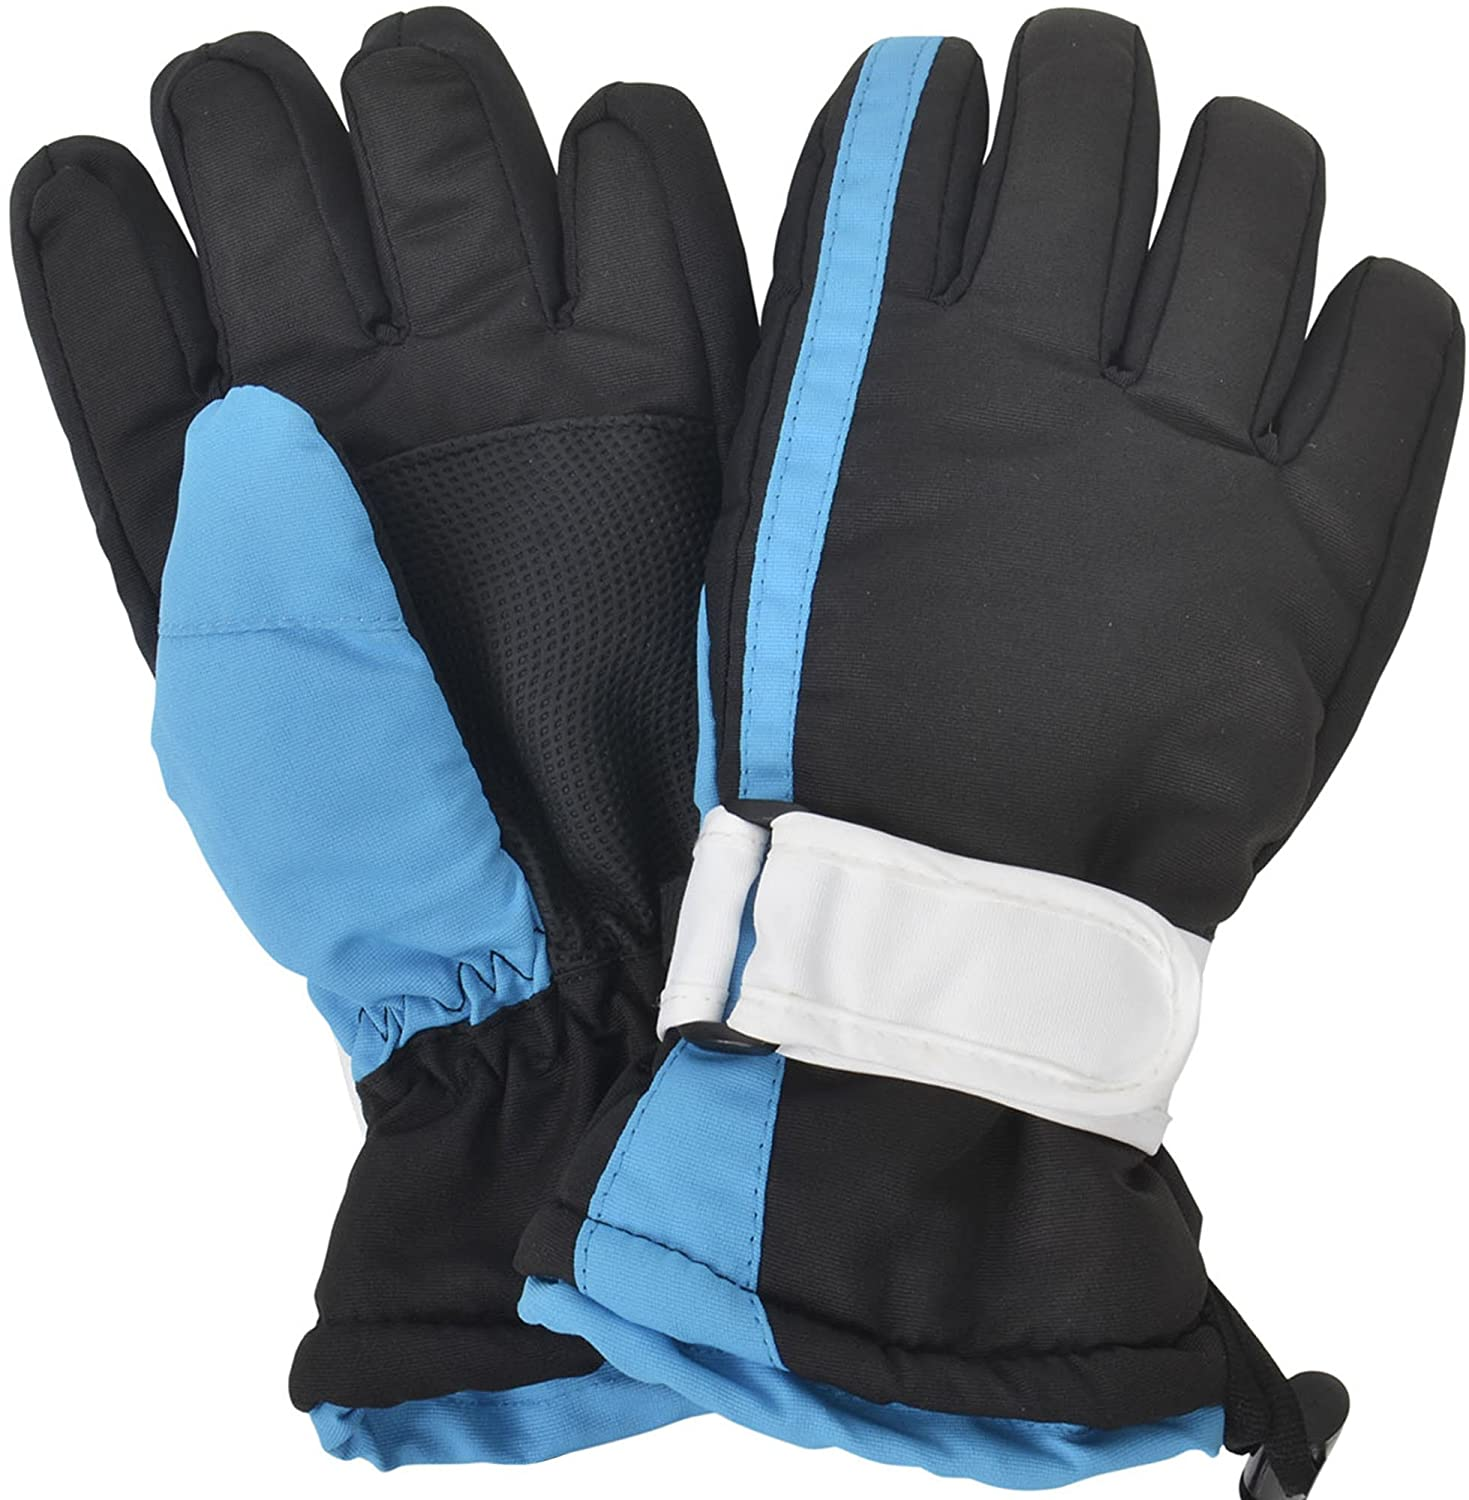 Kids Ski Gloves Waterproof 3M Thinsulate Winter Snow Gloves S Simplicity 88-B15060012-01